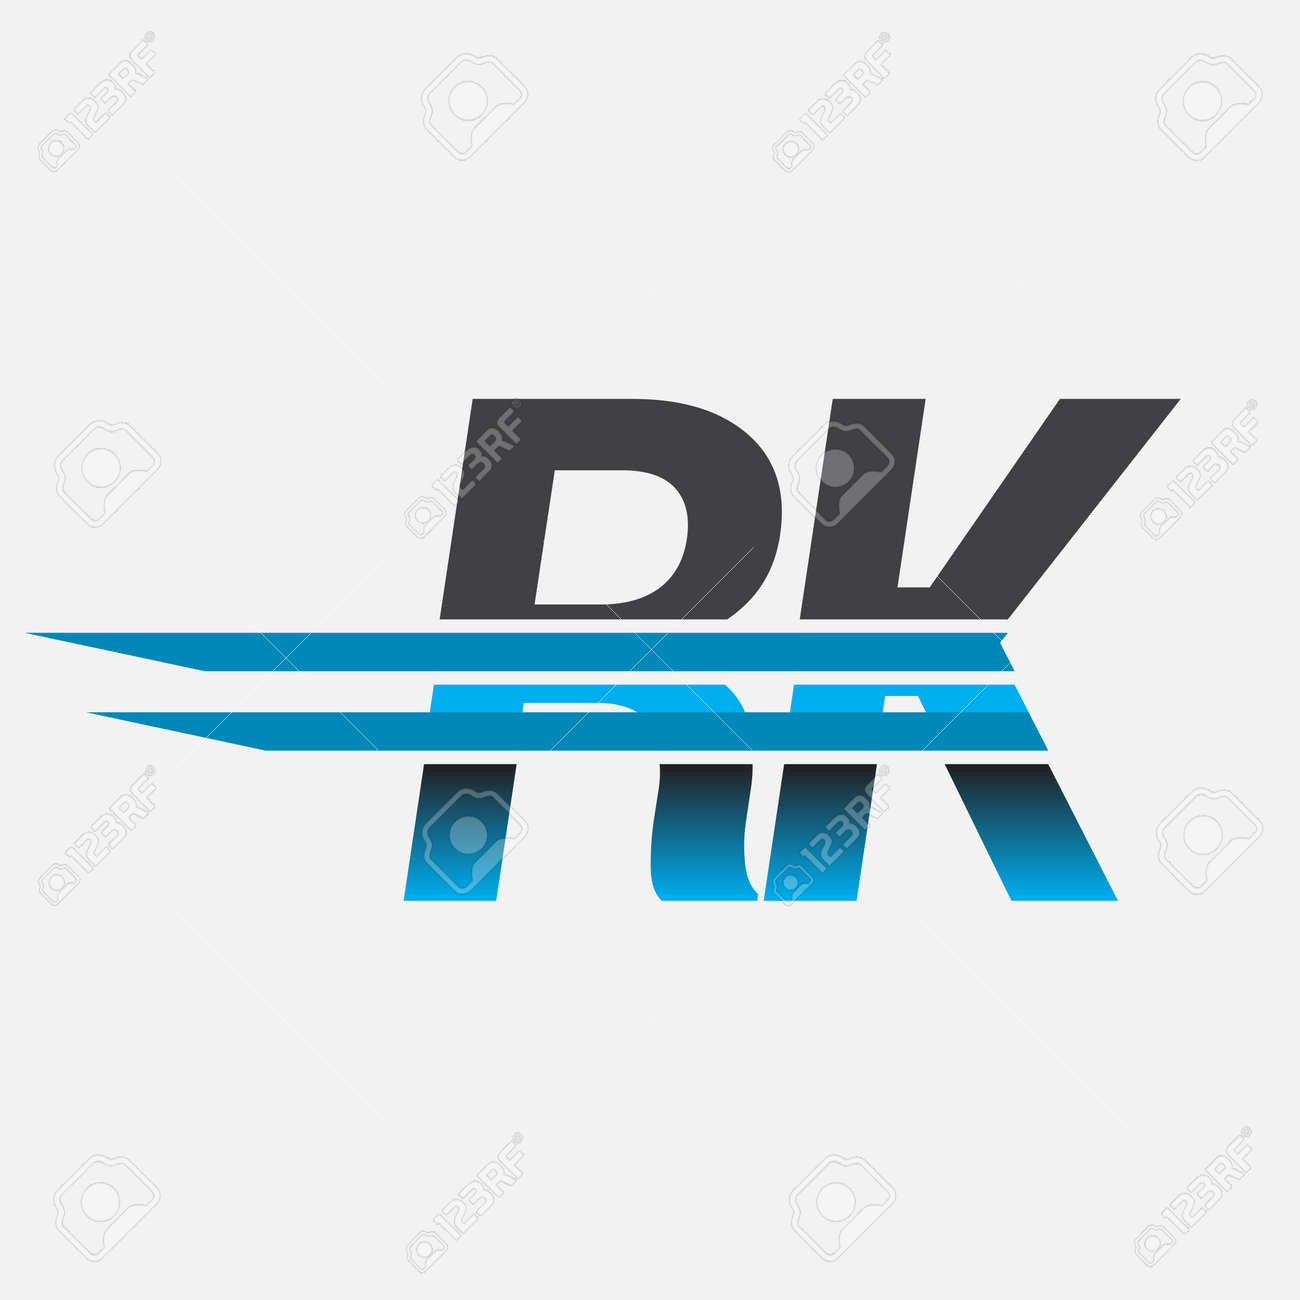 initial logo RK company name colored black and blue, Simple and Modern Logo Design. - 158547524